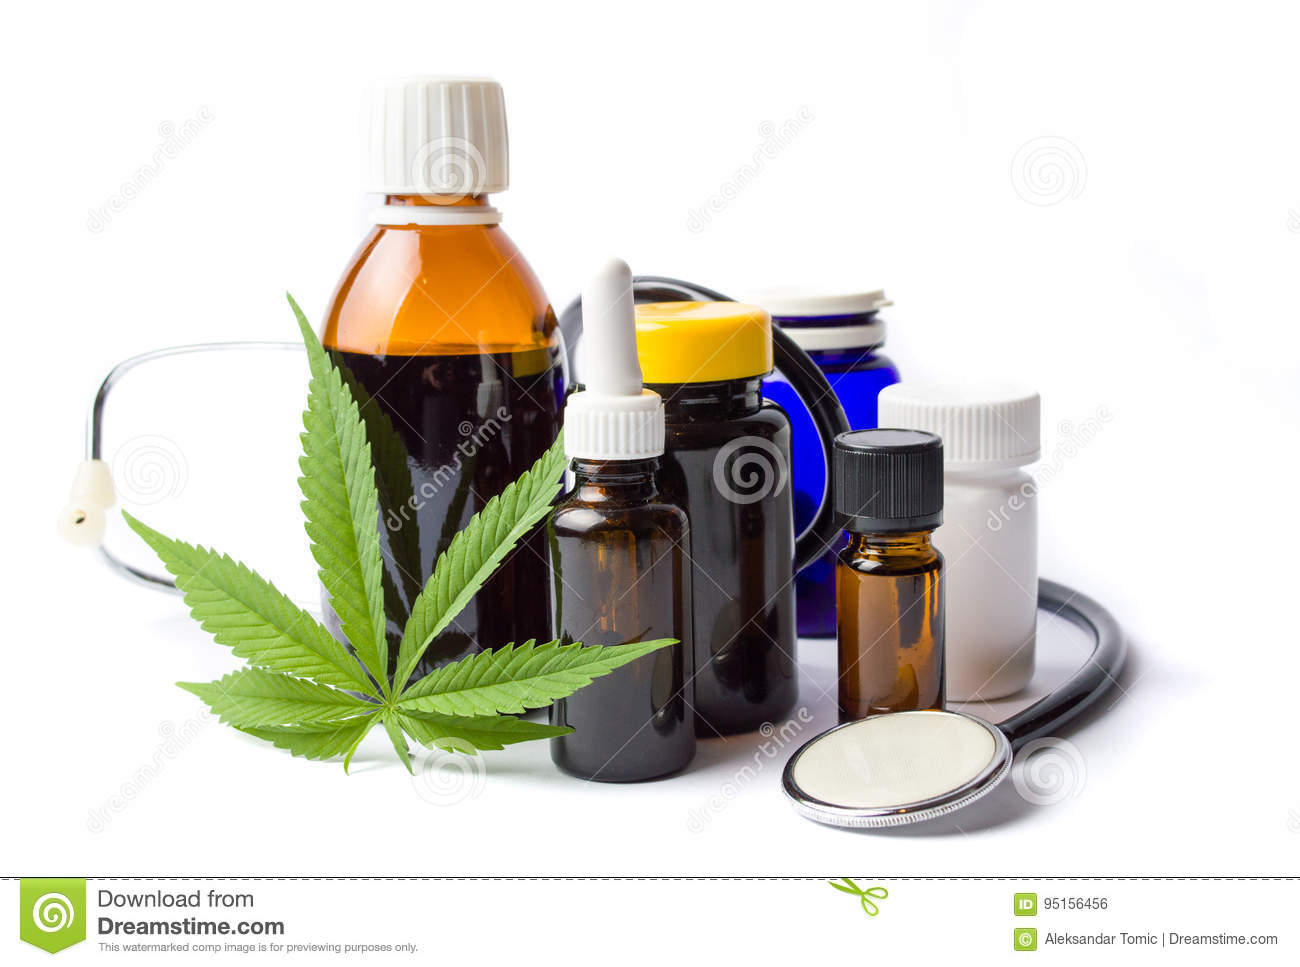 Marijuana and cannabis oil bottles isolated